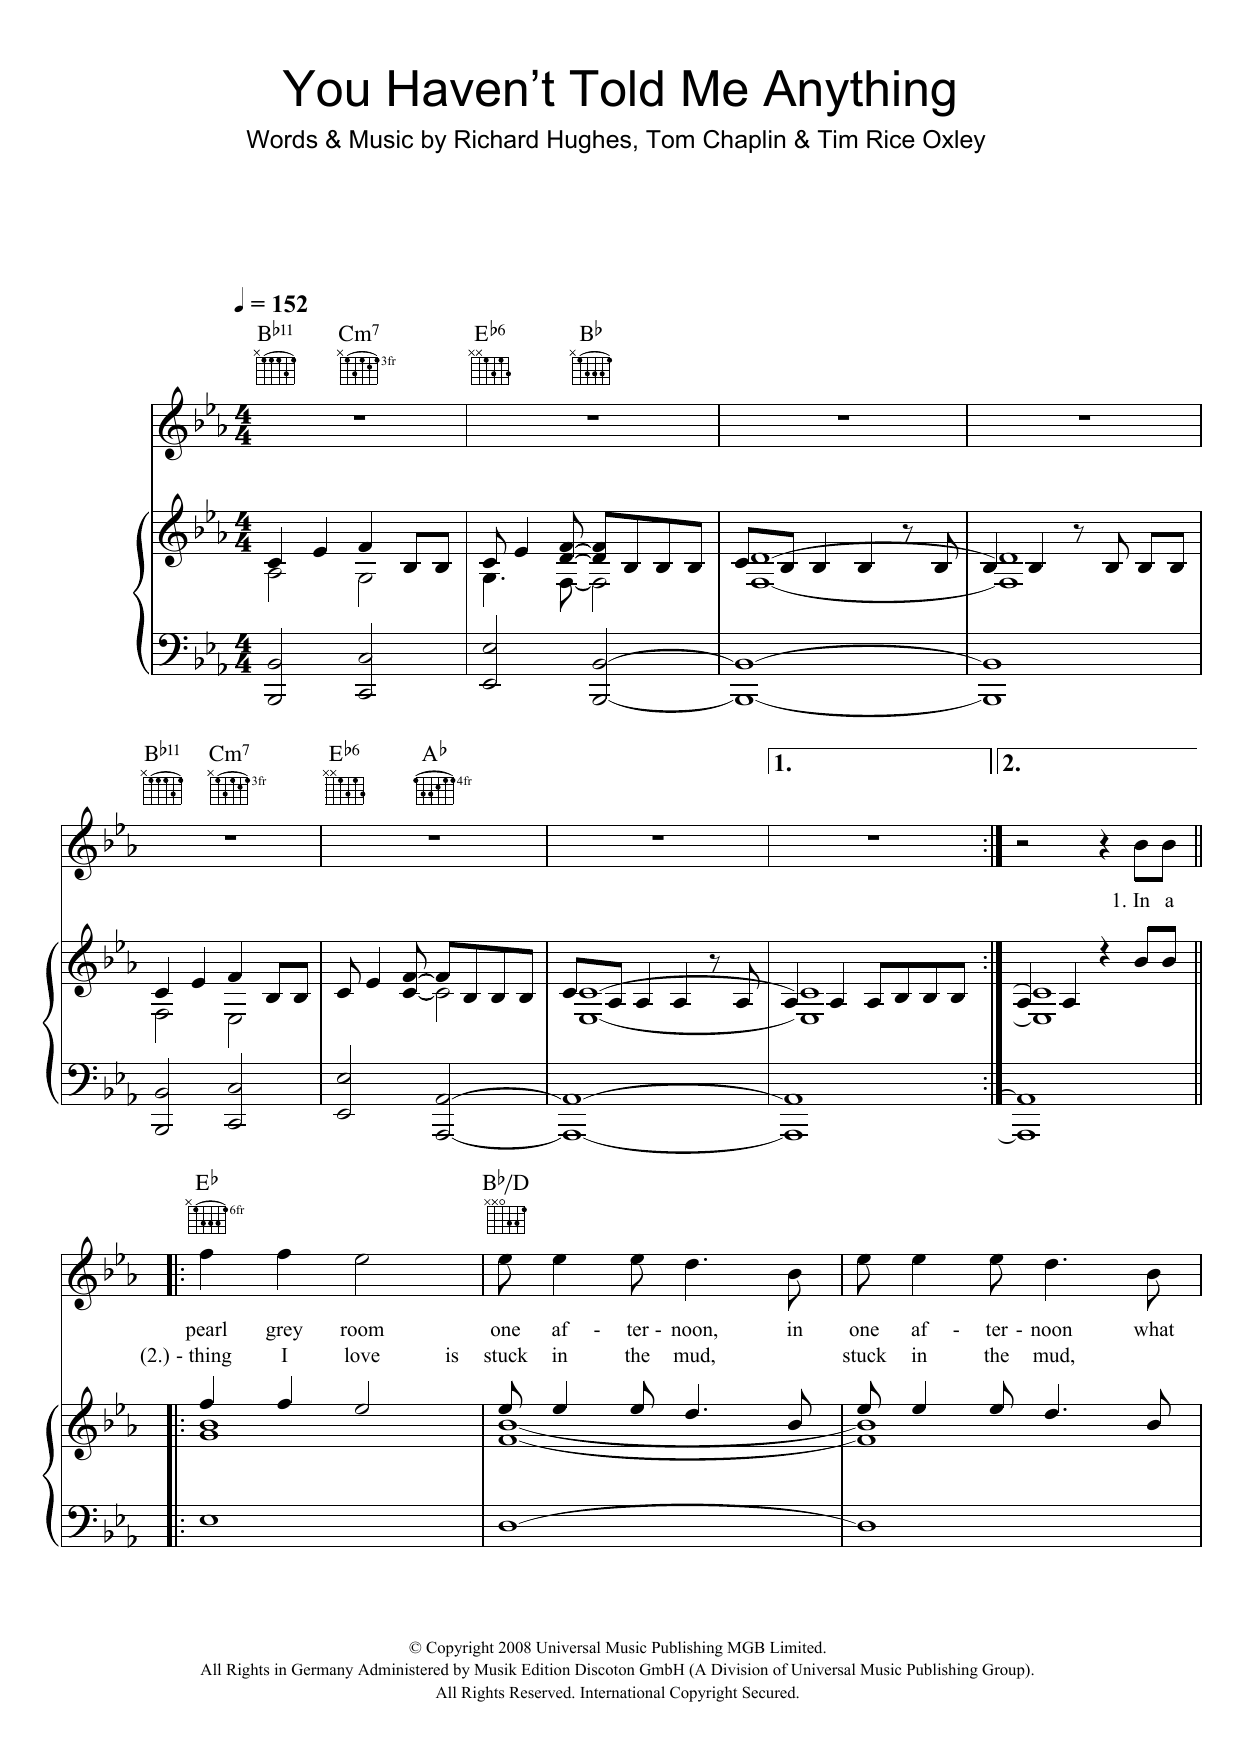 You Haven't Told Me Anything Sheet Music